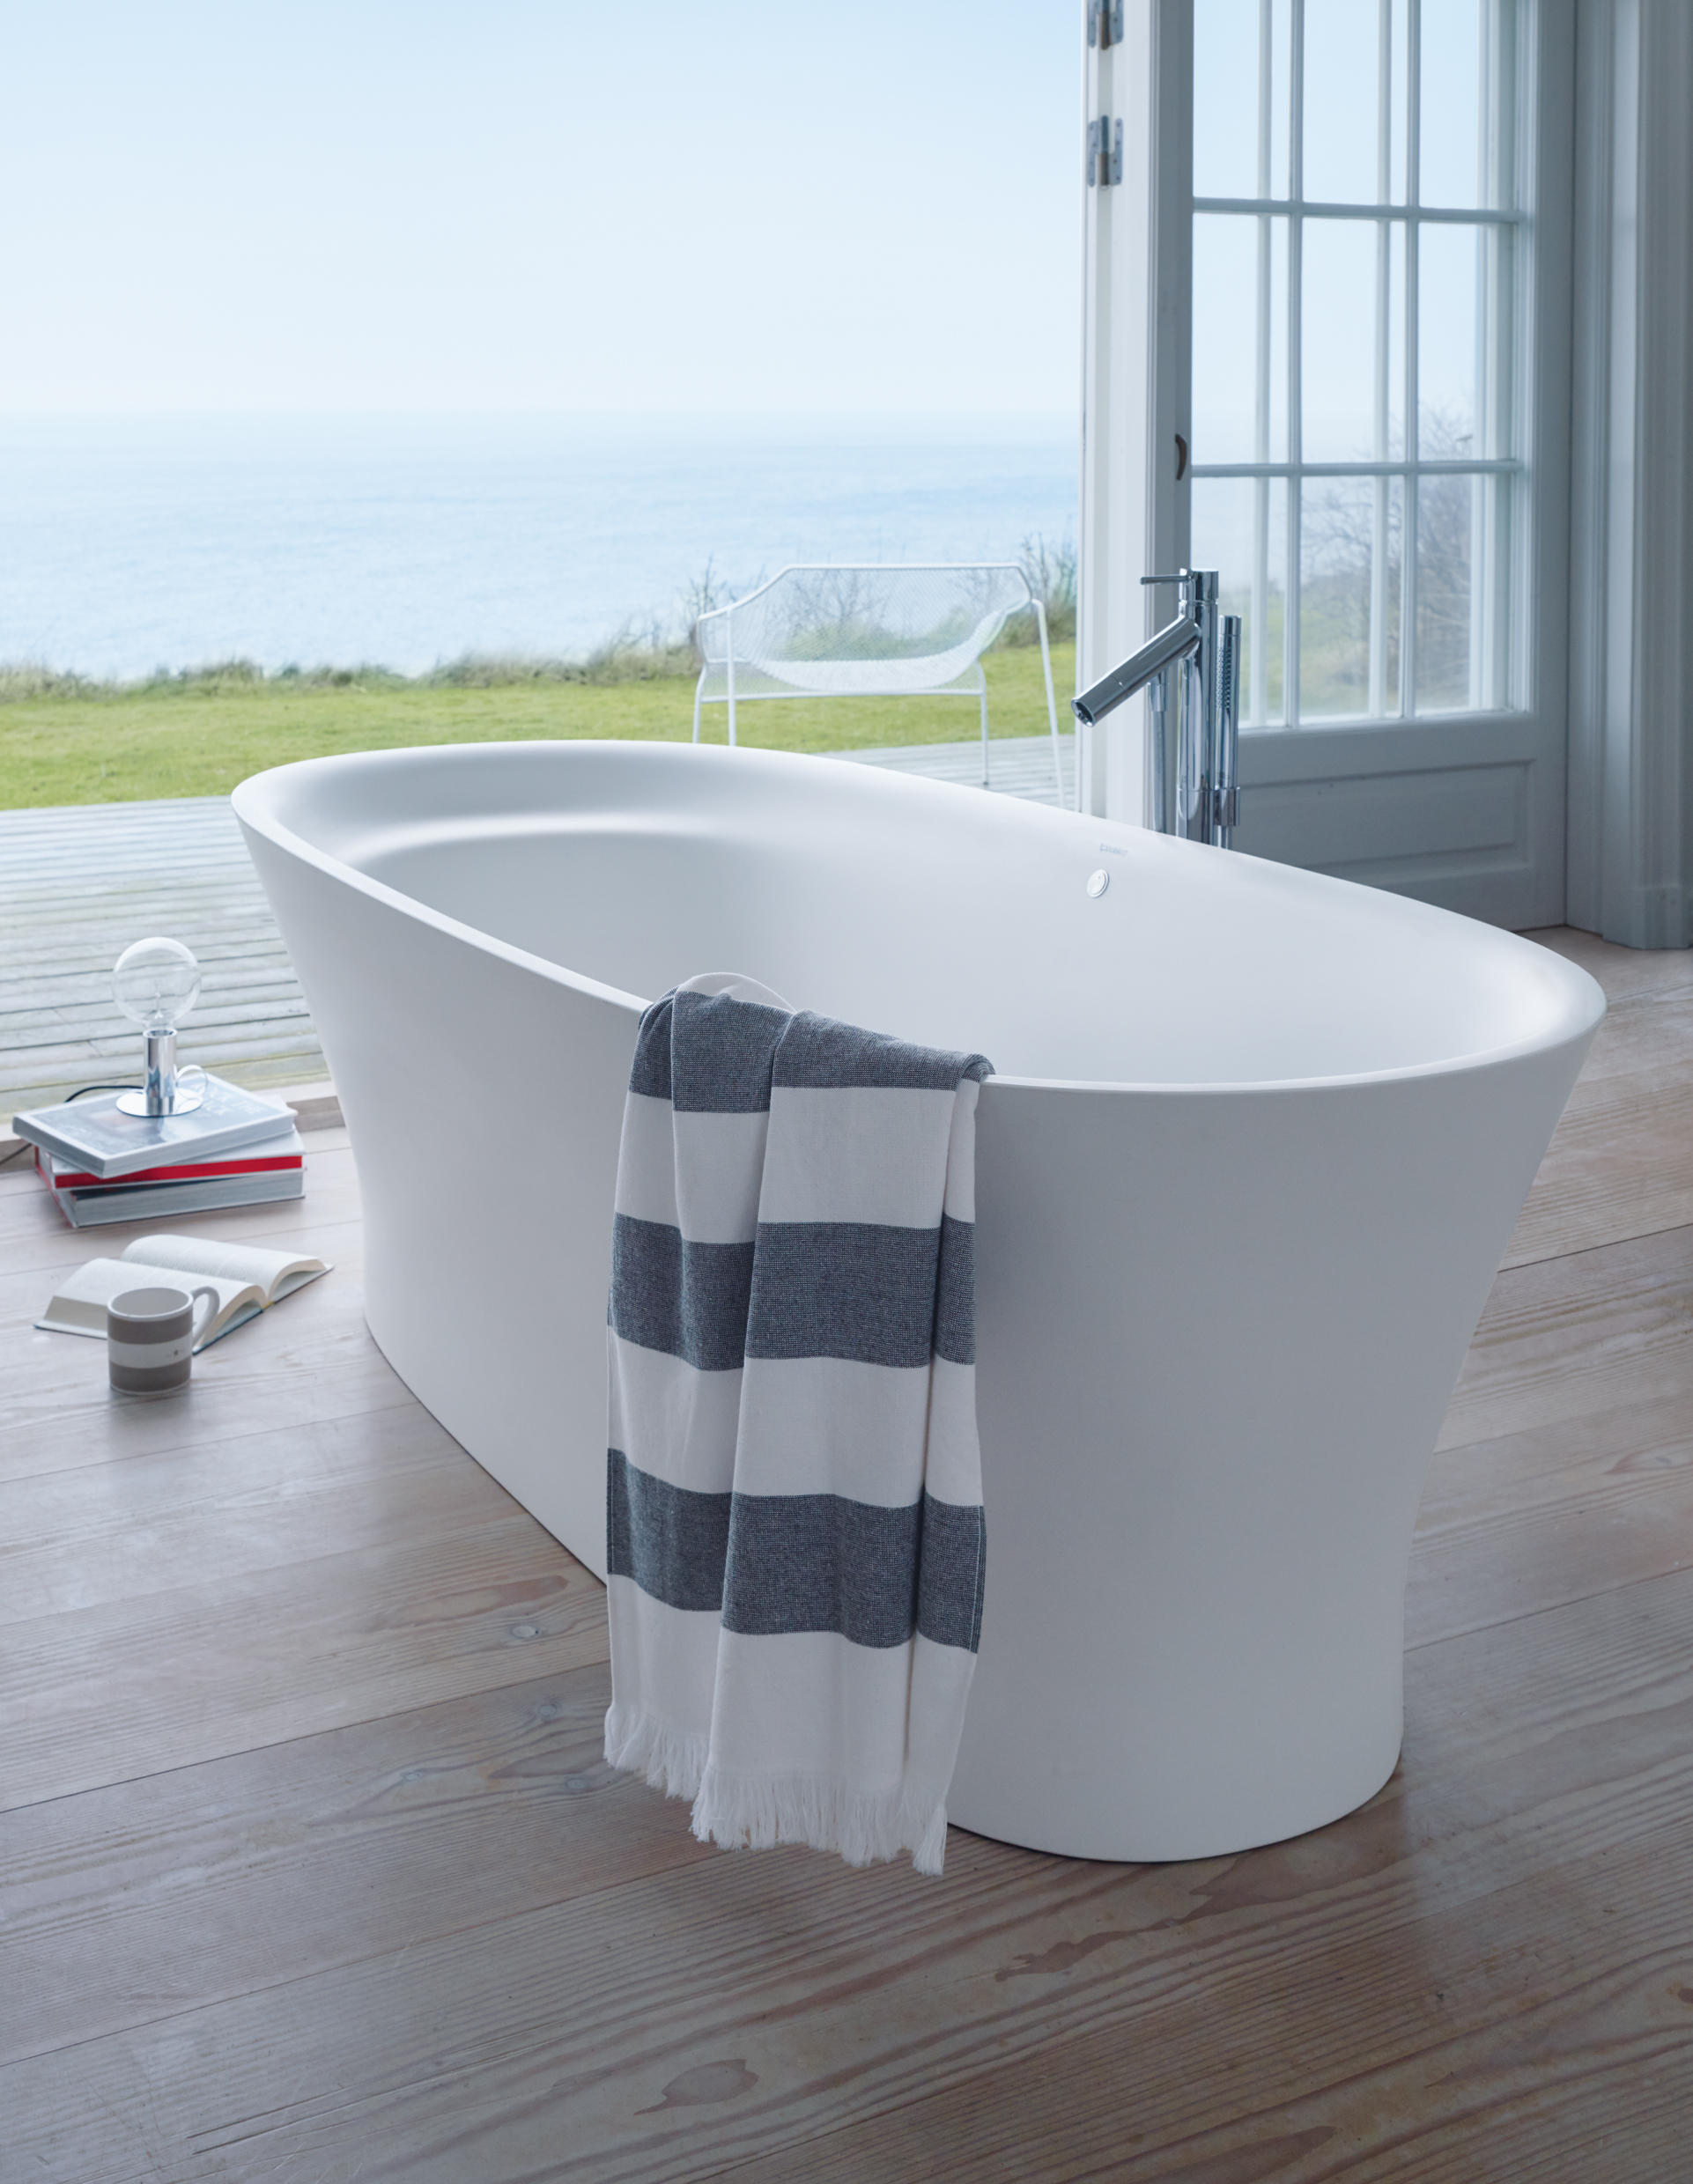 Cape cod bathtub free standing baths from duravit for Tub materials